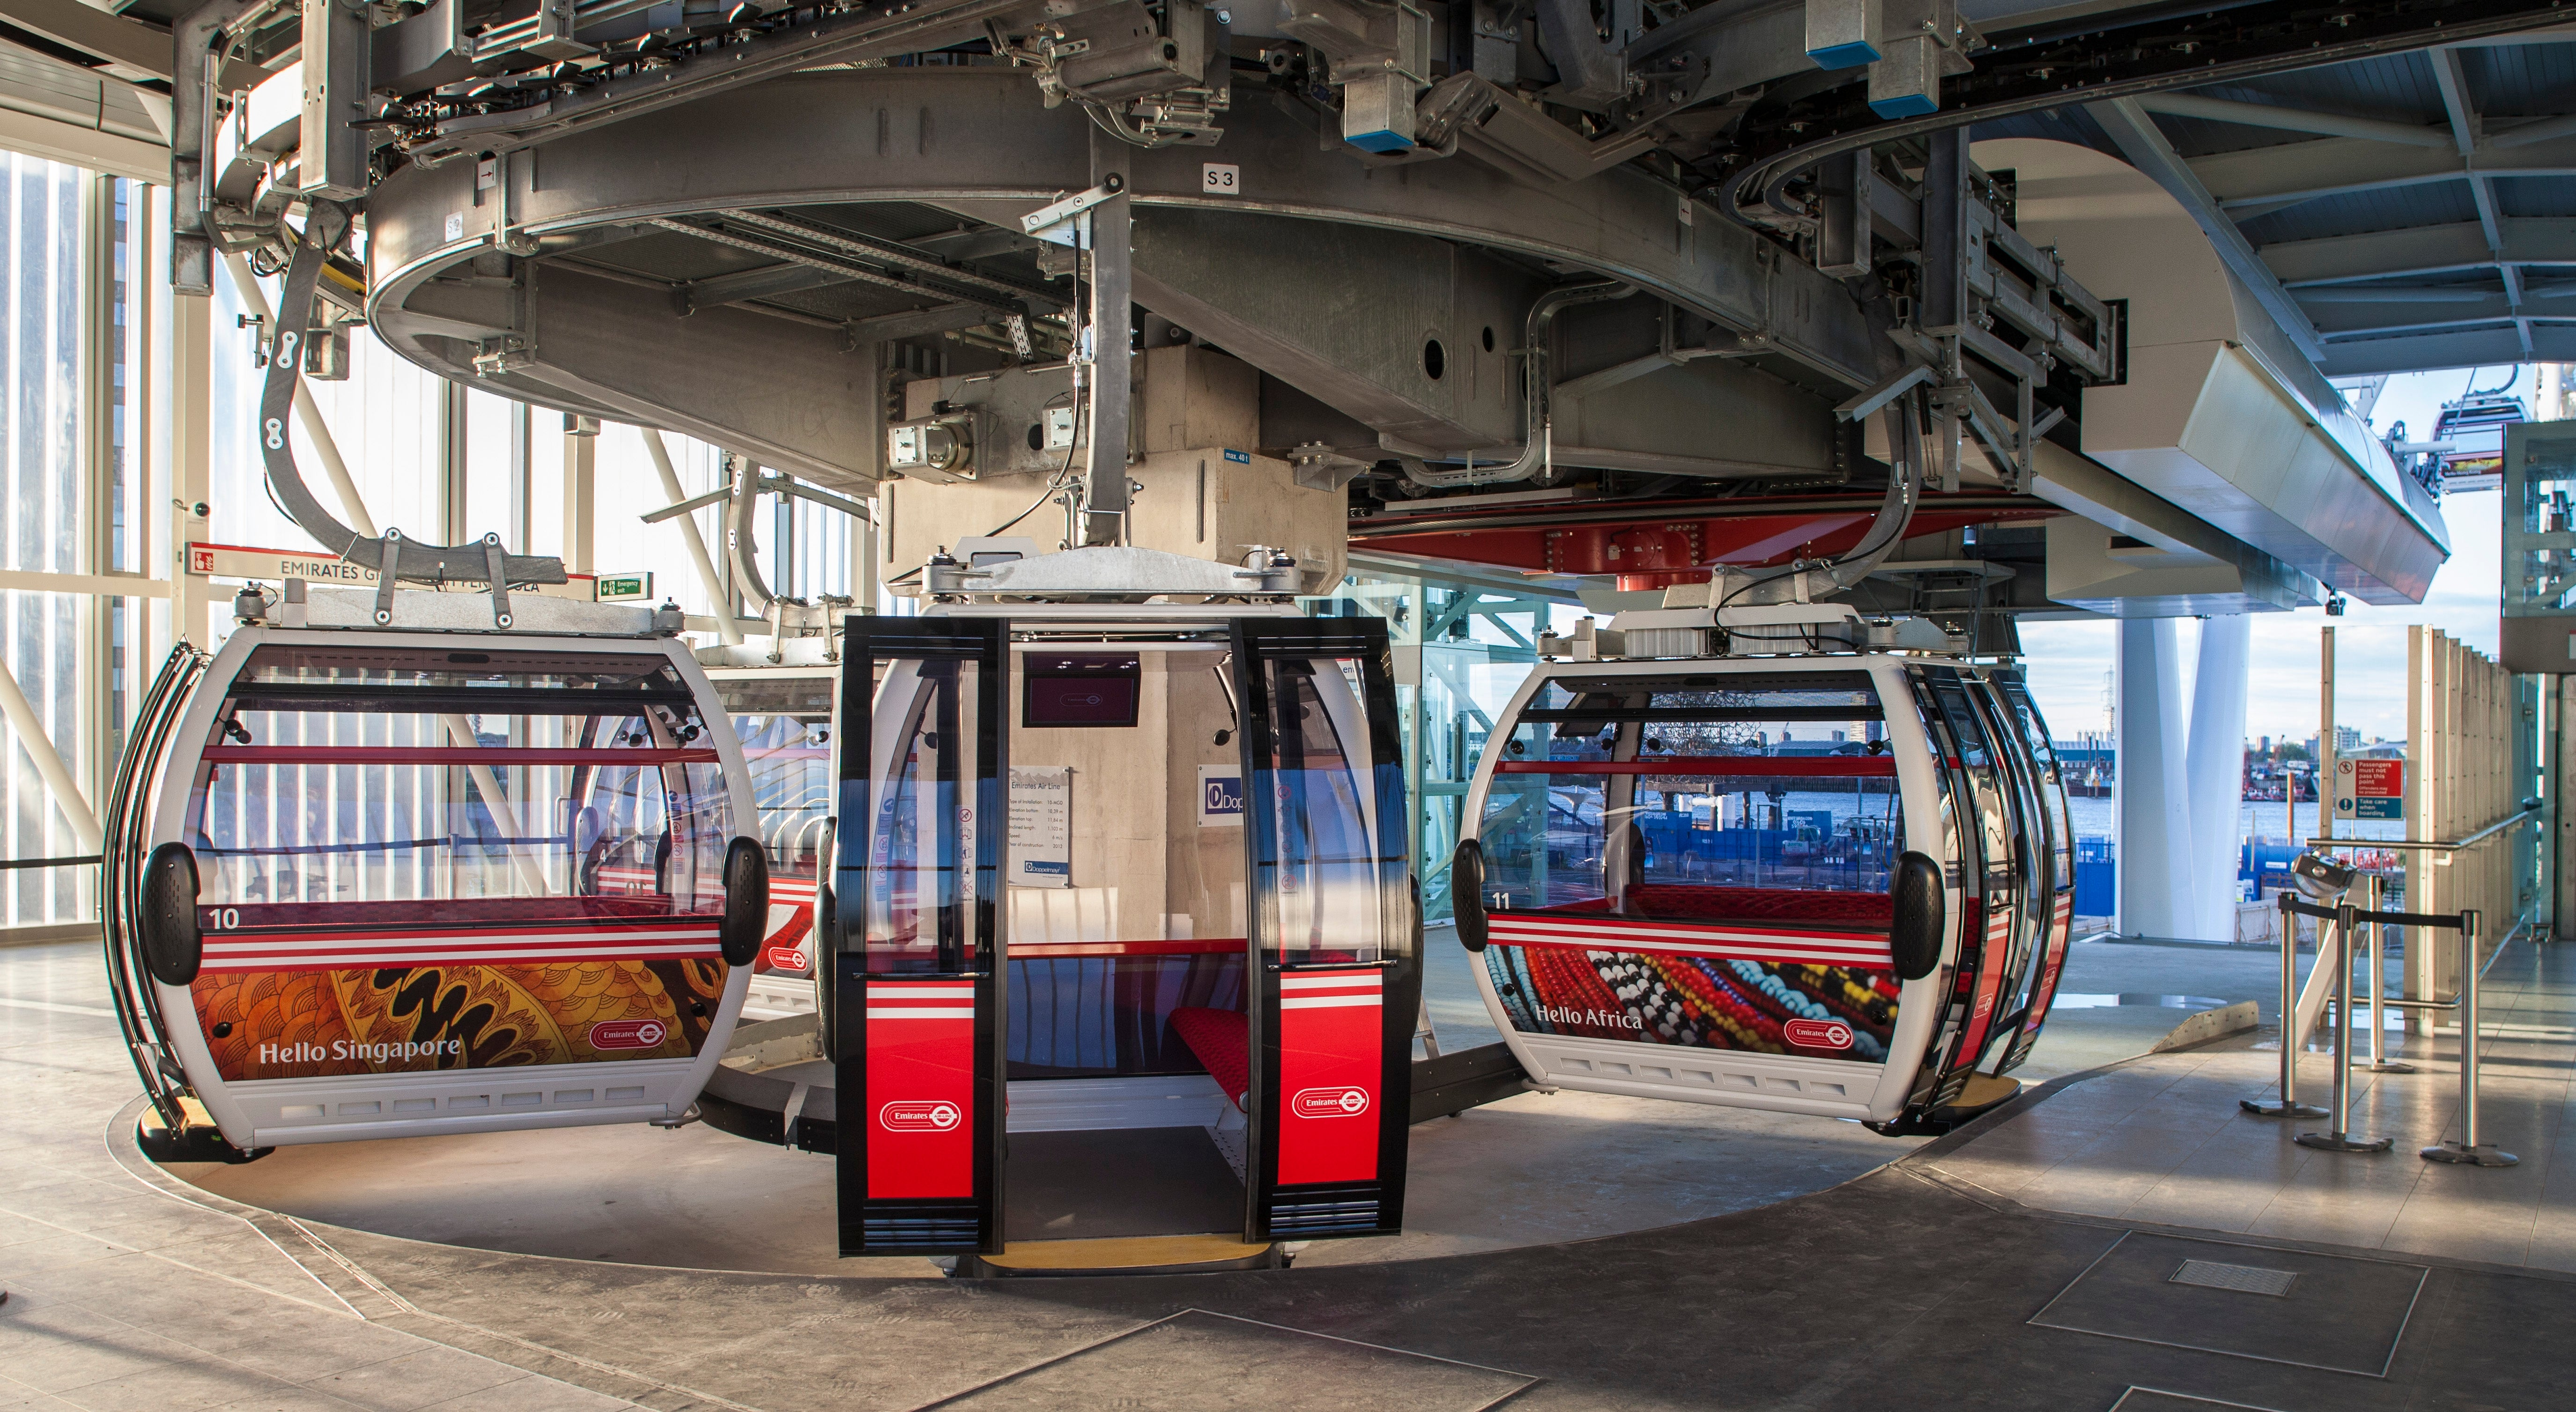 Where To Buy Cable Car Tickets